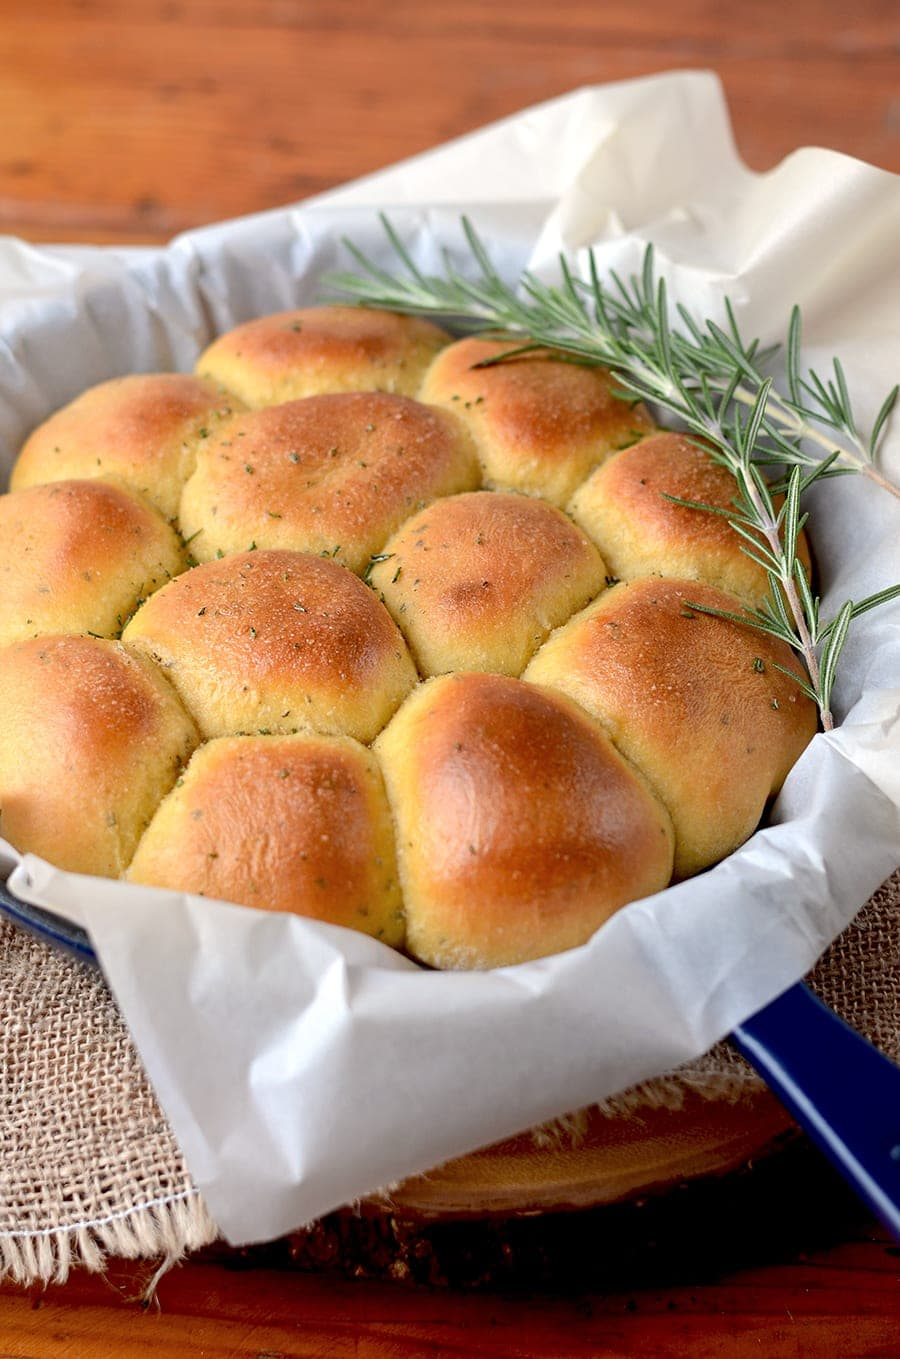 This versatile and delicious recipe will make your holiday dinner prep so much easier! This dough not only makes fabulous Rosemary Sweet Potato Rolls, but it can also be used as pizza dough!